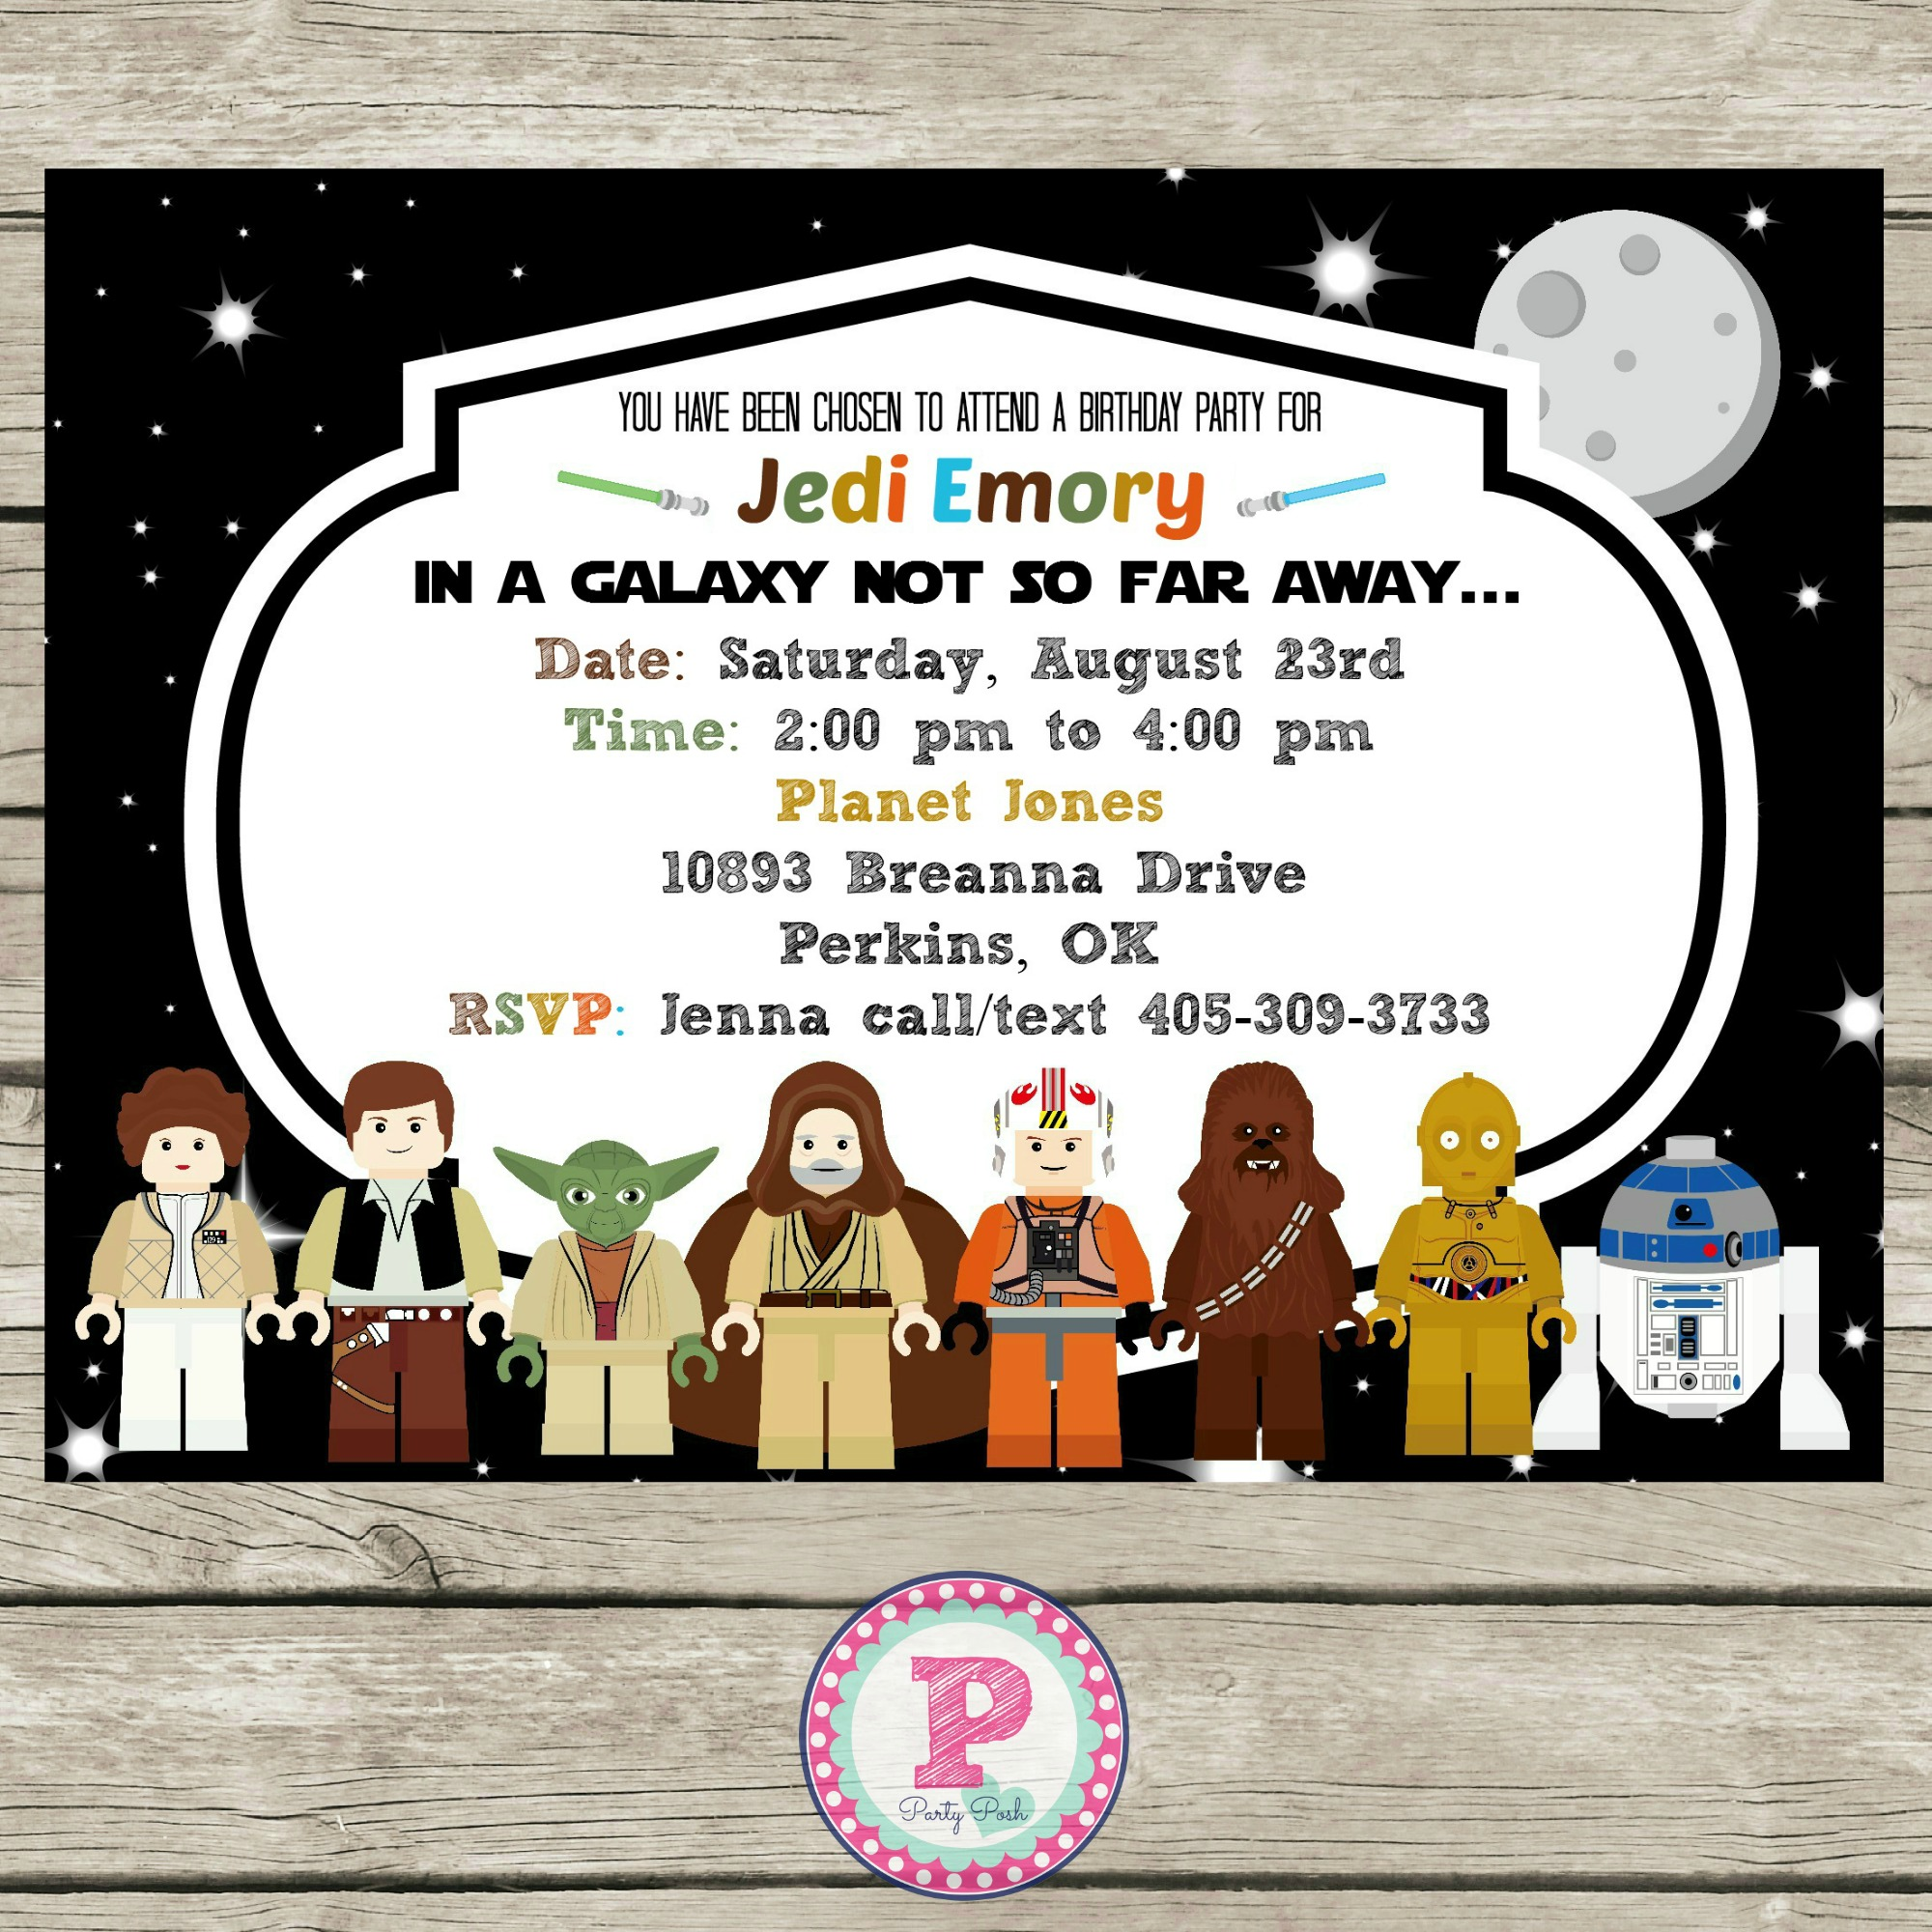 Star Wars Lego Birthday Party Ideas, Invitations, Photo Props ...